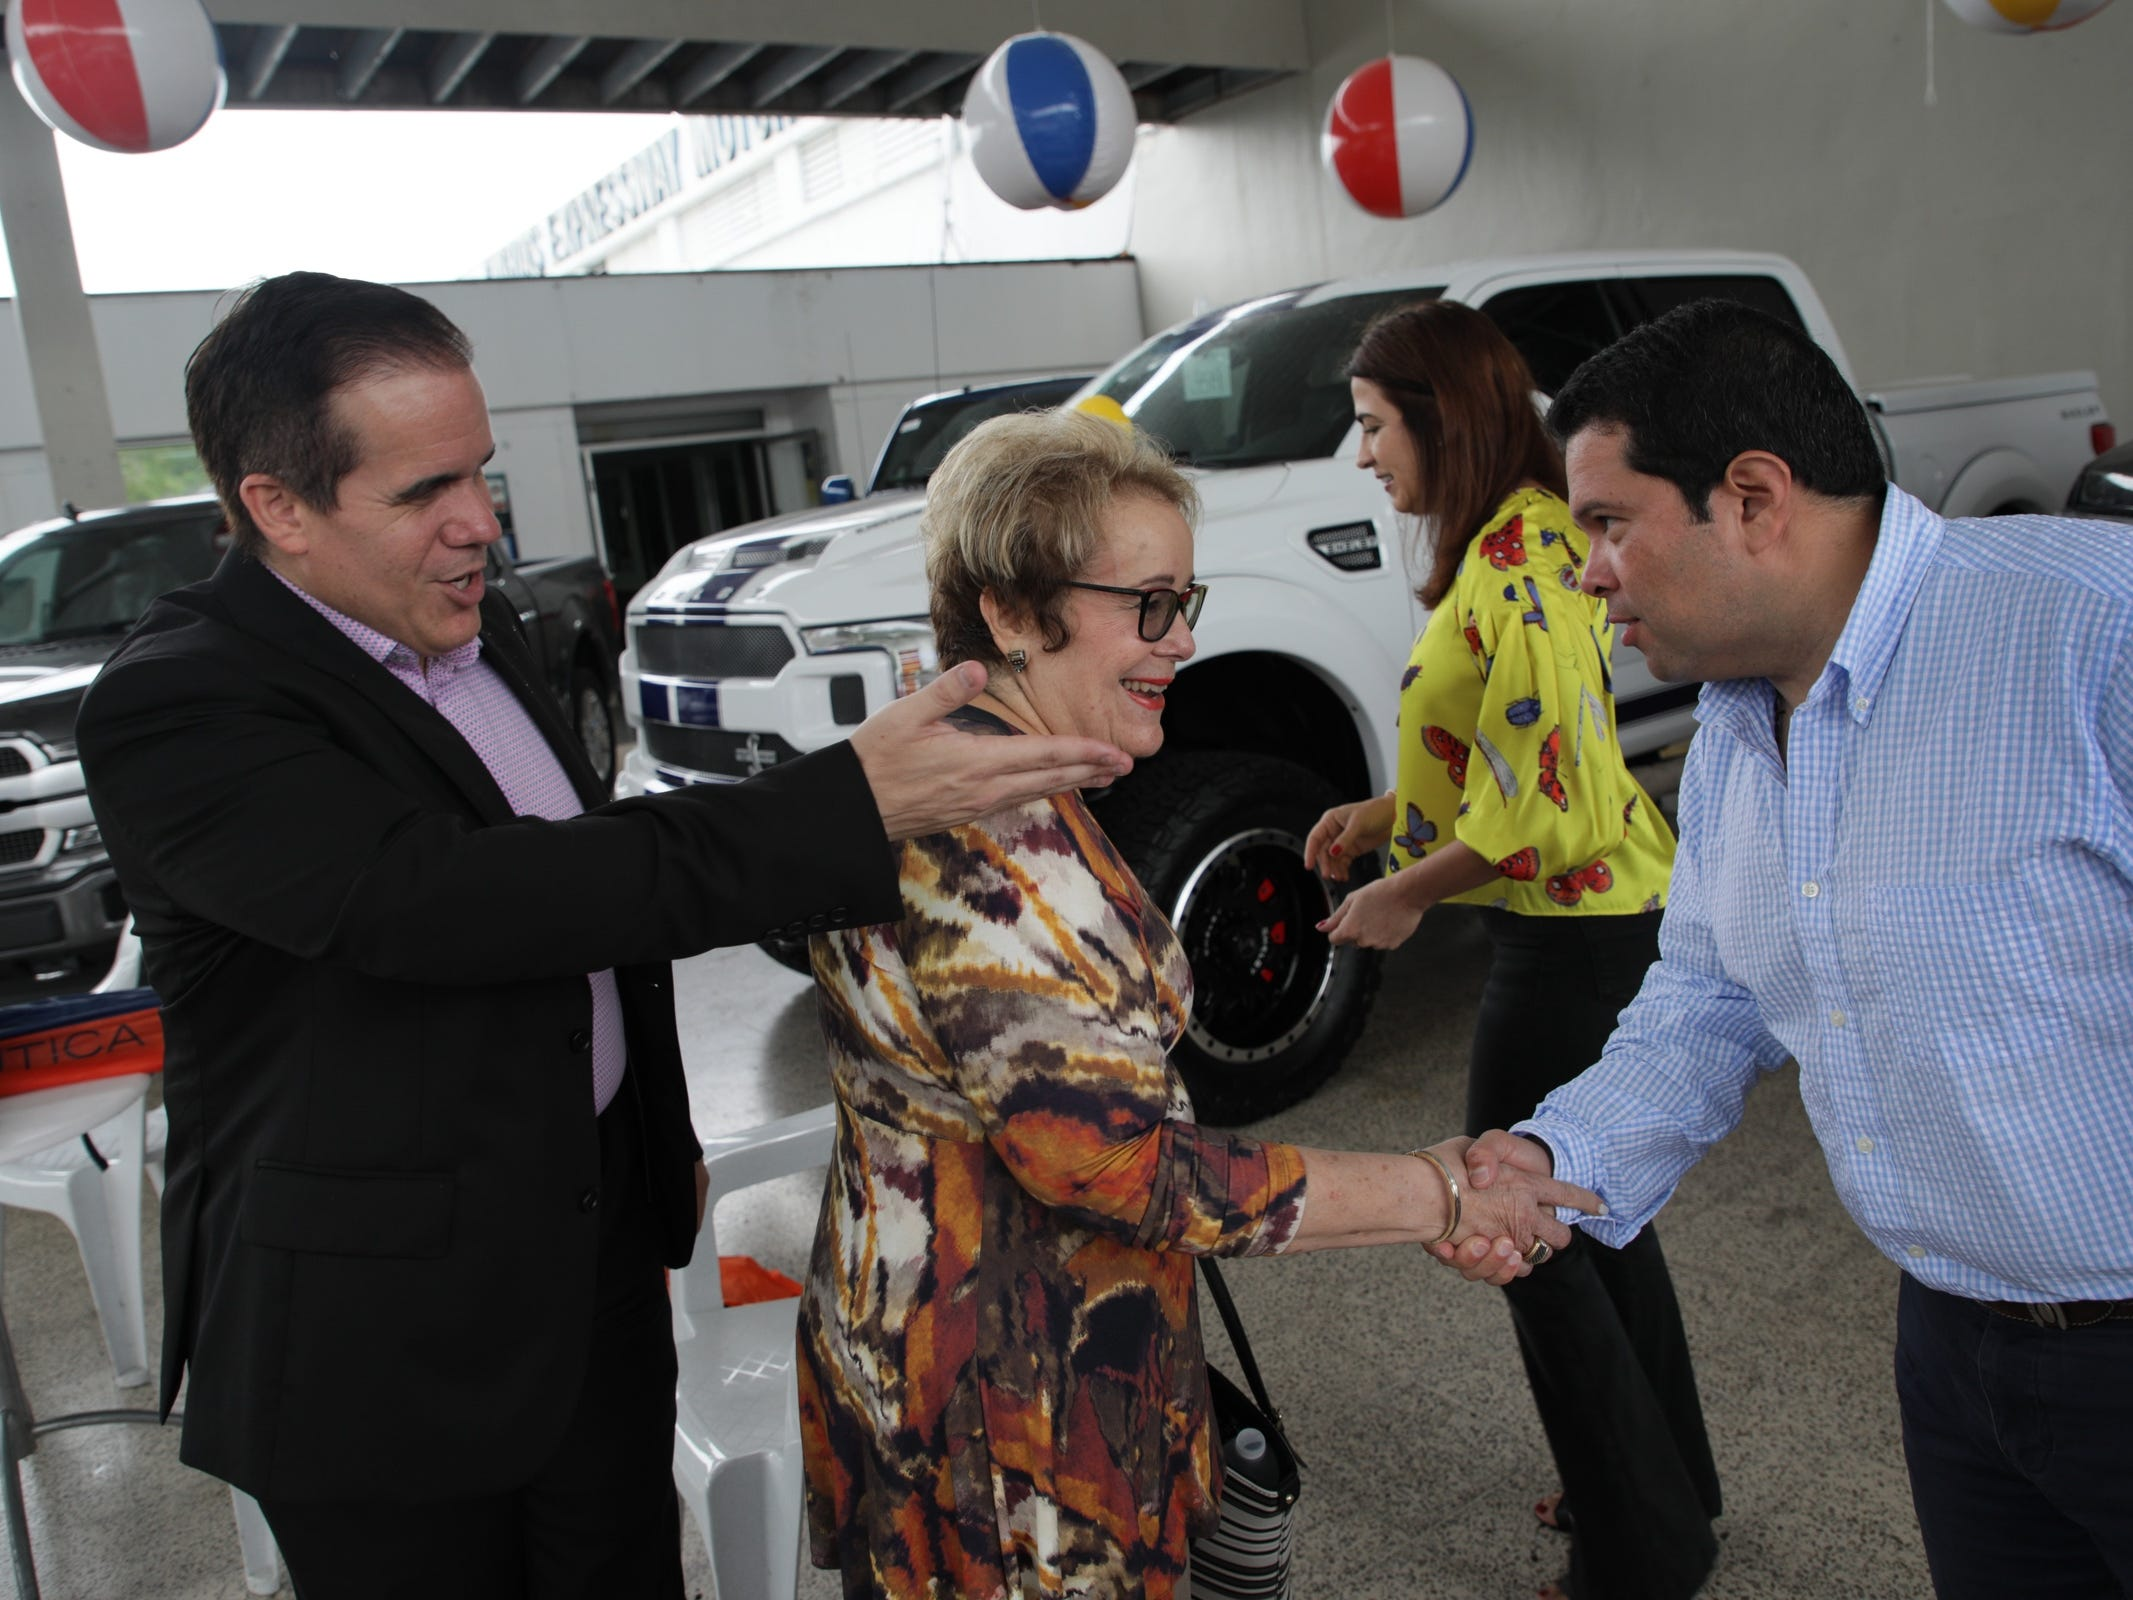 (l to r) Julio Ortiz, vice president of Caguas Expressway Motors, from left introduces his mother Elva Mendez, president of Caguas Expressway Motors to Joe Avila of the Ford Fund at their Ford dealership in Caguas, Puerto Rico.